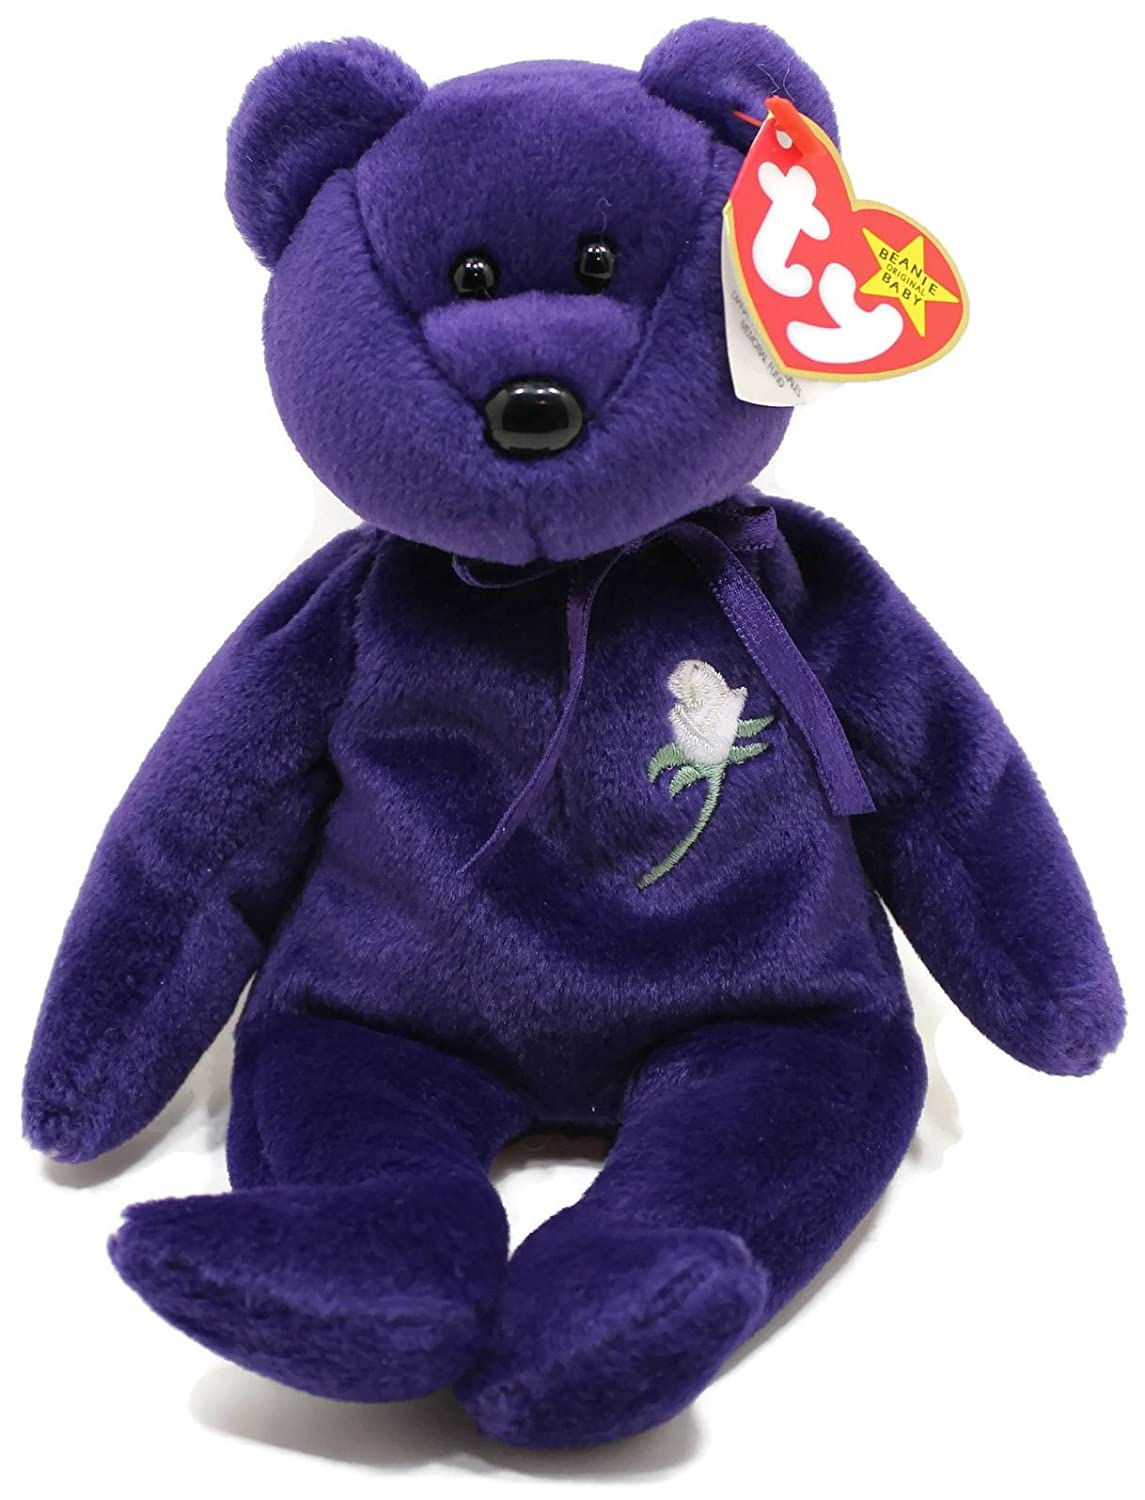 Amazon.com  Princess Diana Ty Beanie Baby Bear - Mint w  Collectible  Display Case  Toys   Games a11144fbd6dc